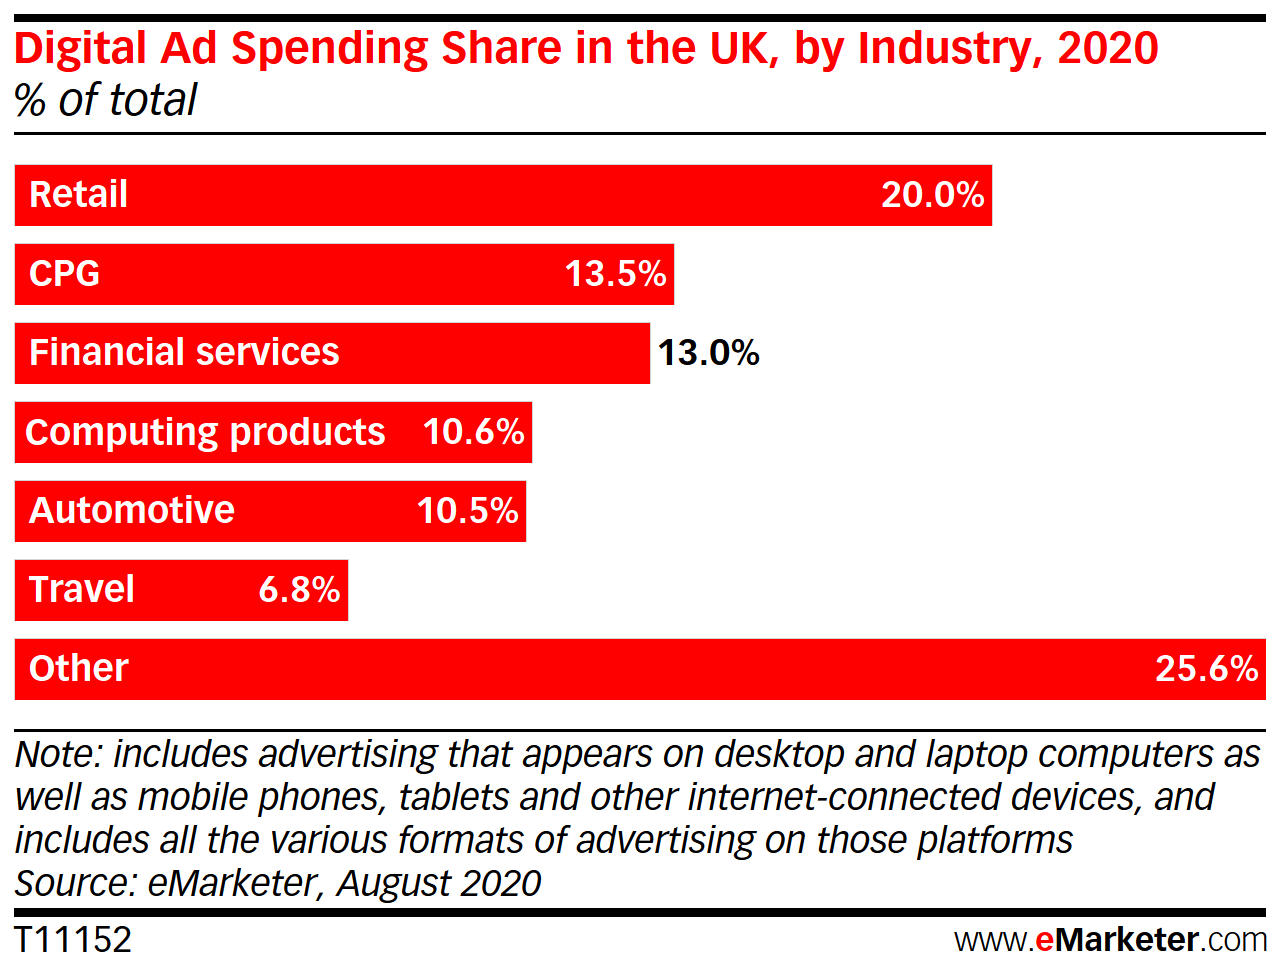 Digital Ad Spending Share in the UK, by Industry, 2020 (% of total)